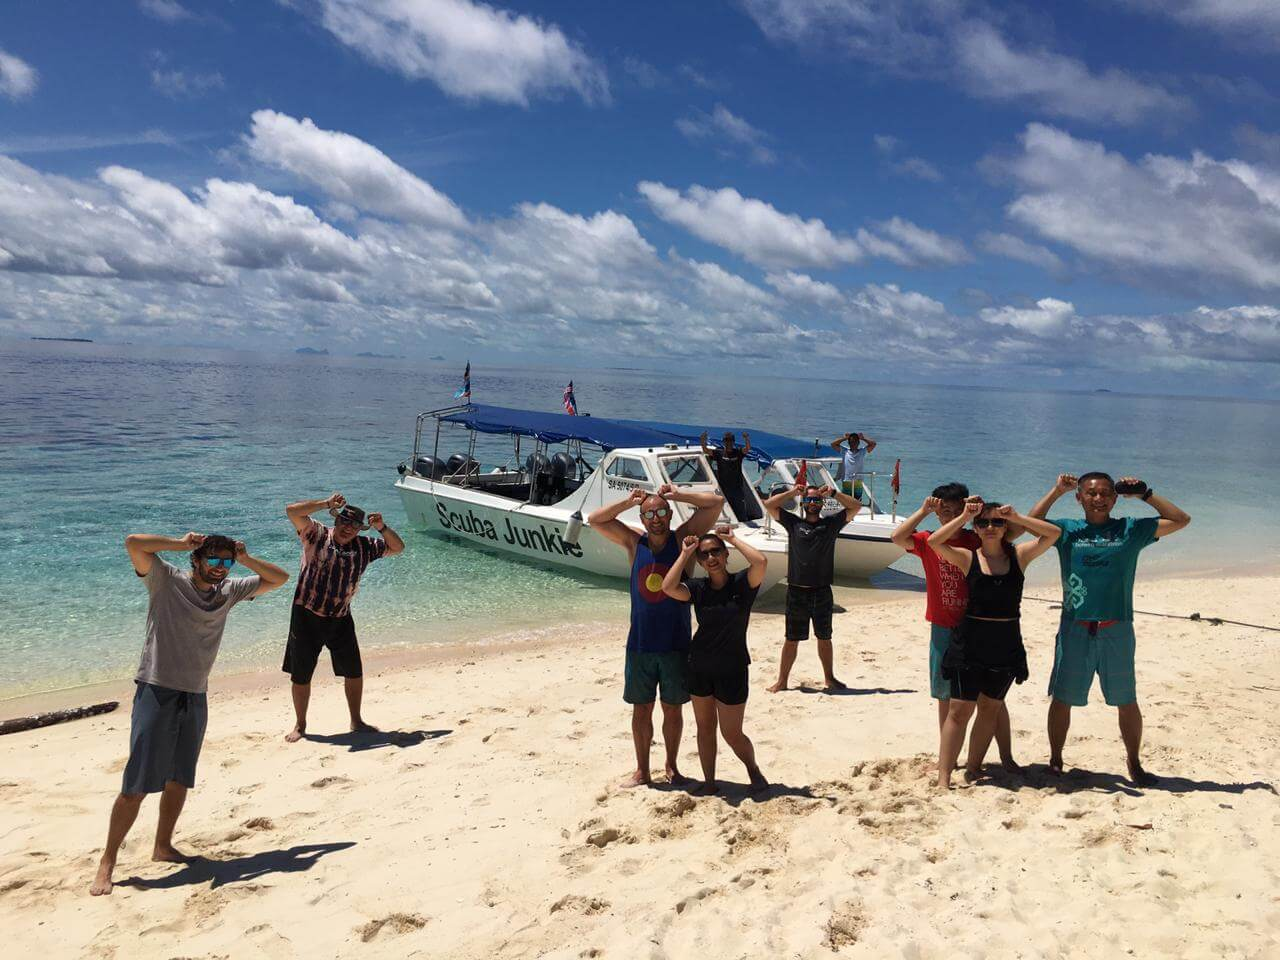 Happy Scuba Junkie Divers at Pulau Sipadan. The group had just seen scalloped hammerhead sharks - a rare species - on a dive. (Photo credit: M Wendels)